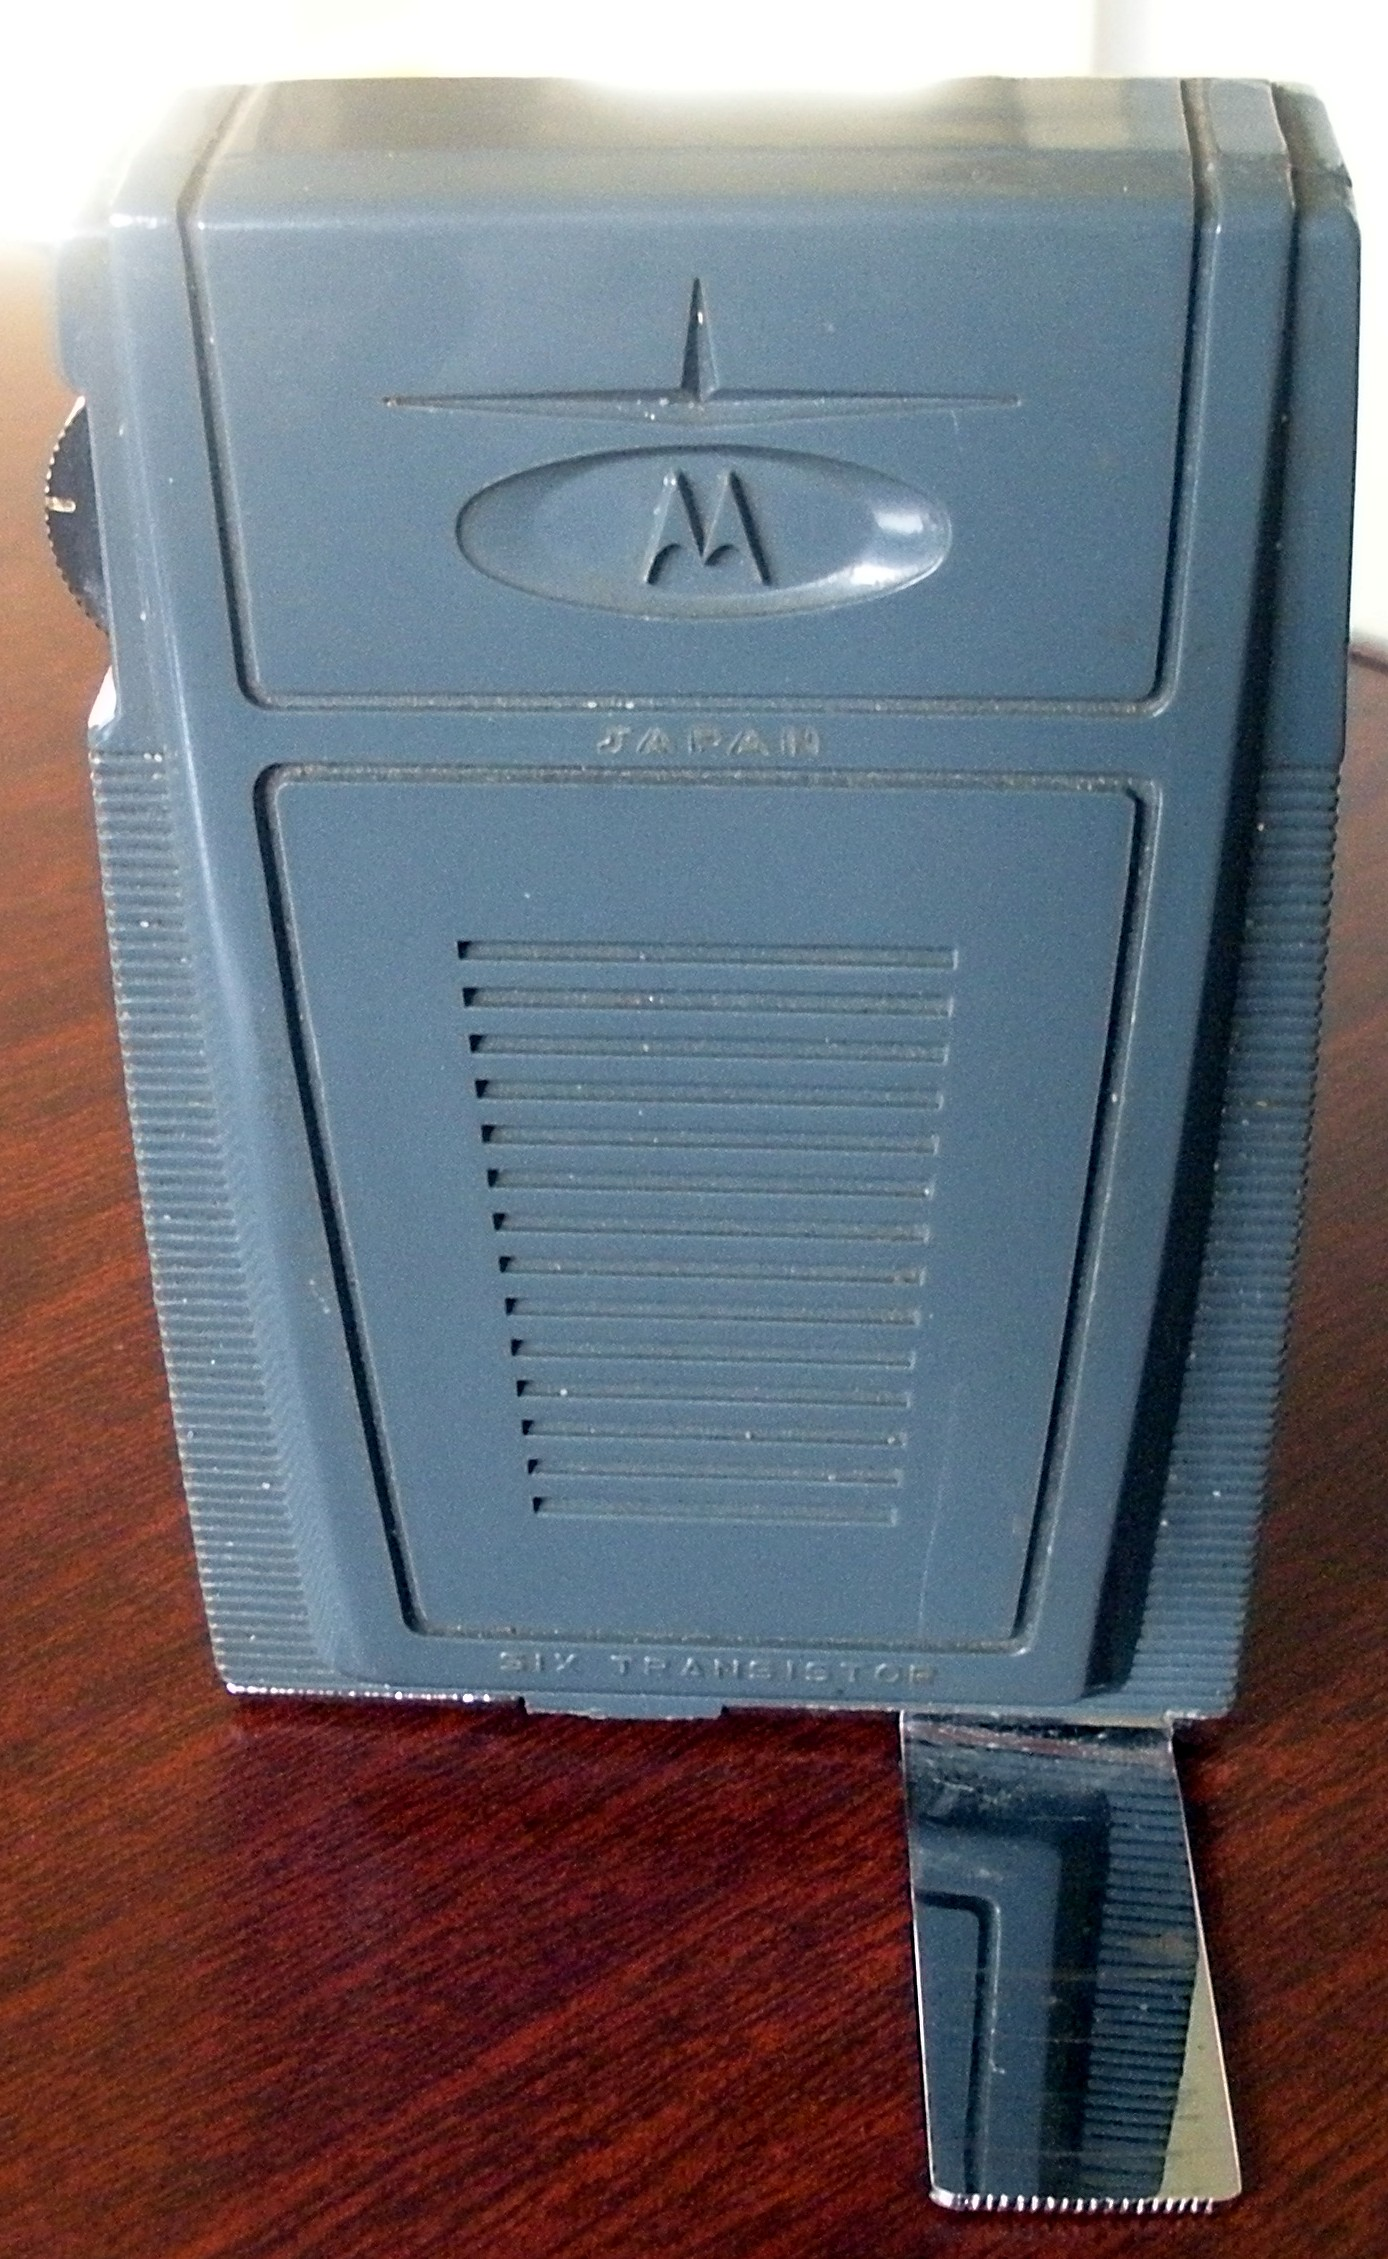 My latest find - Motorola X15A DSCN9660